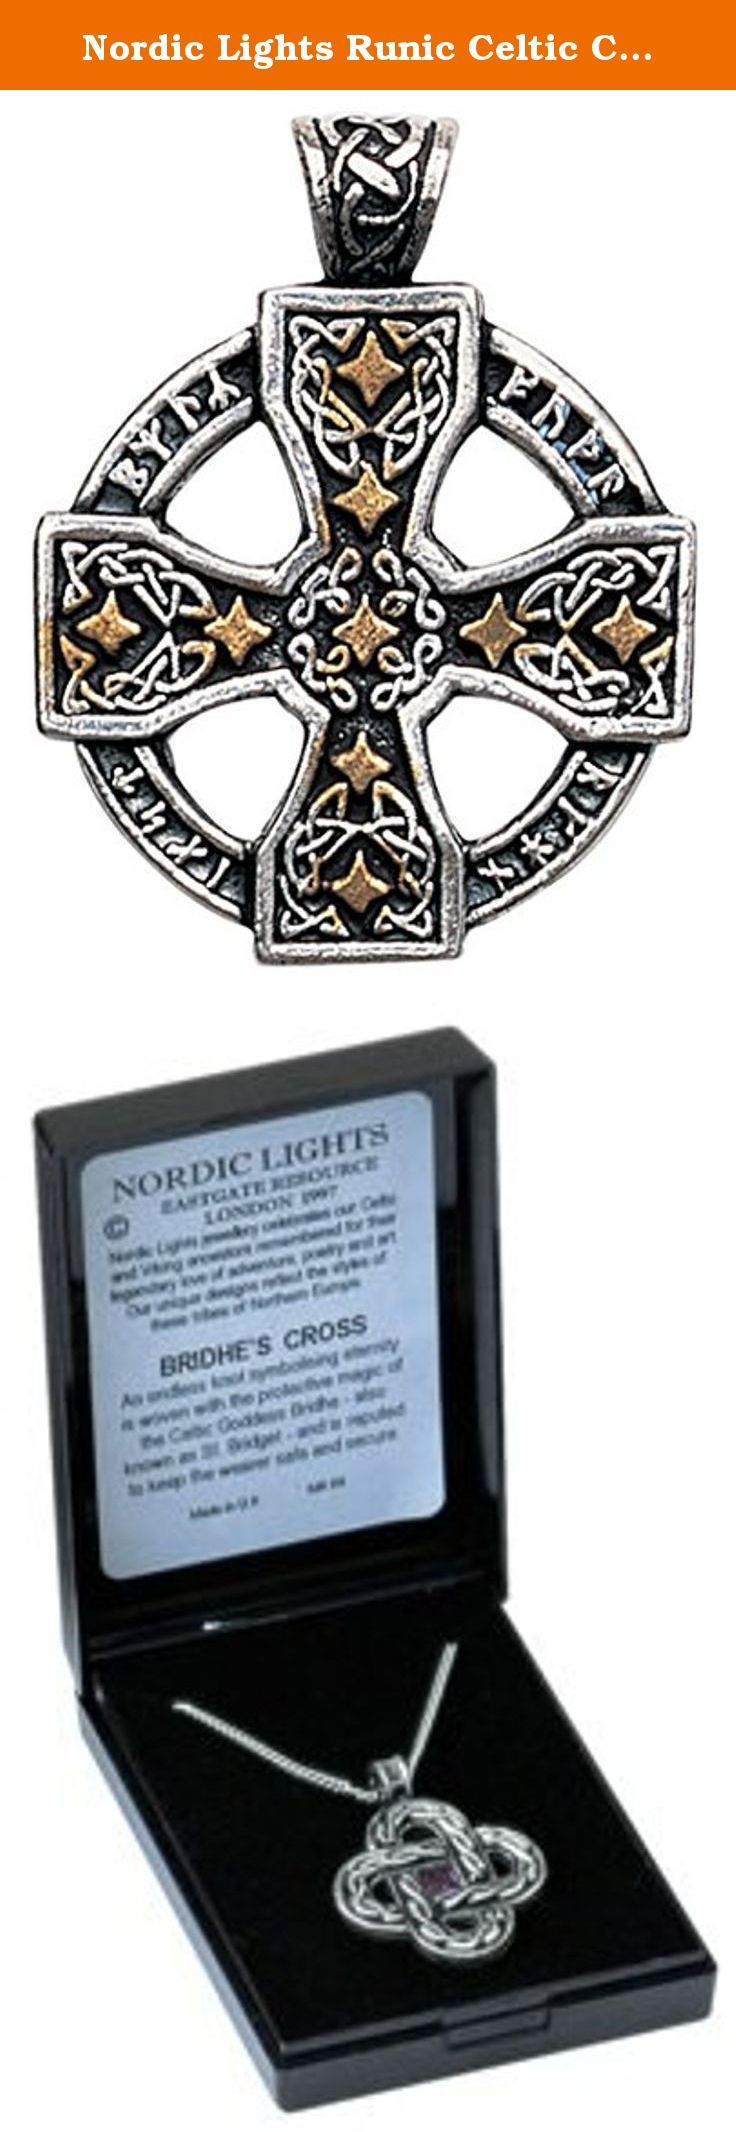 "Nordic Lights Runic Celtic Cross Pendant Amulet Talisman for Knowledge and Magickal Ability. The Nordic Lights collection is an unsurpassed variety of authentic Viking & Celtic jewelry designed by Maelstrom Odssonn, who is acknowledged in Nordic and Germanic art. The jewelry is produced in pewter and enhanced with Gold and Swarovski Crystals. Maelstrom has crafted a range of true beauty and has carefully researched the meanings. The pendants are provided with a matching 22"" chain and..."